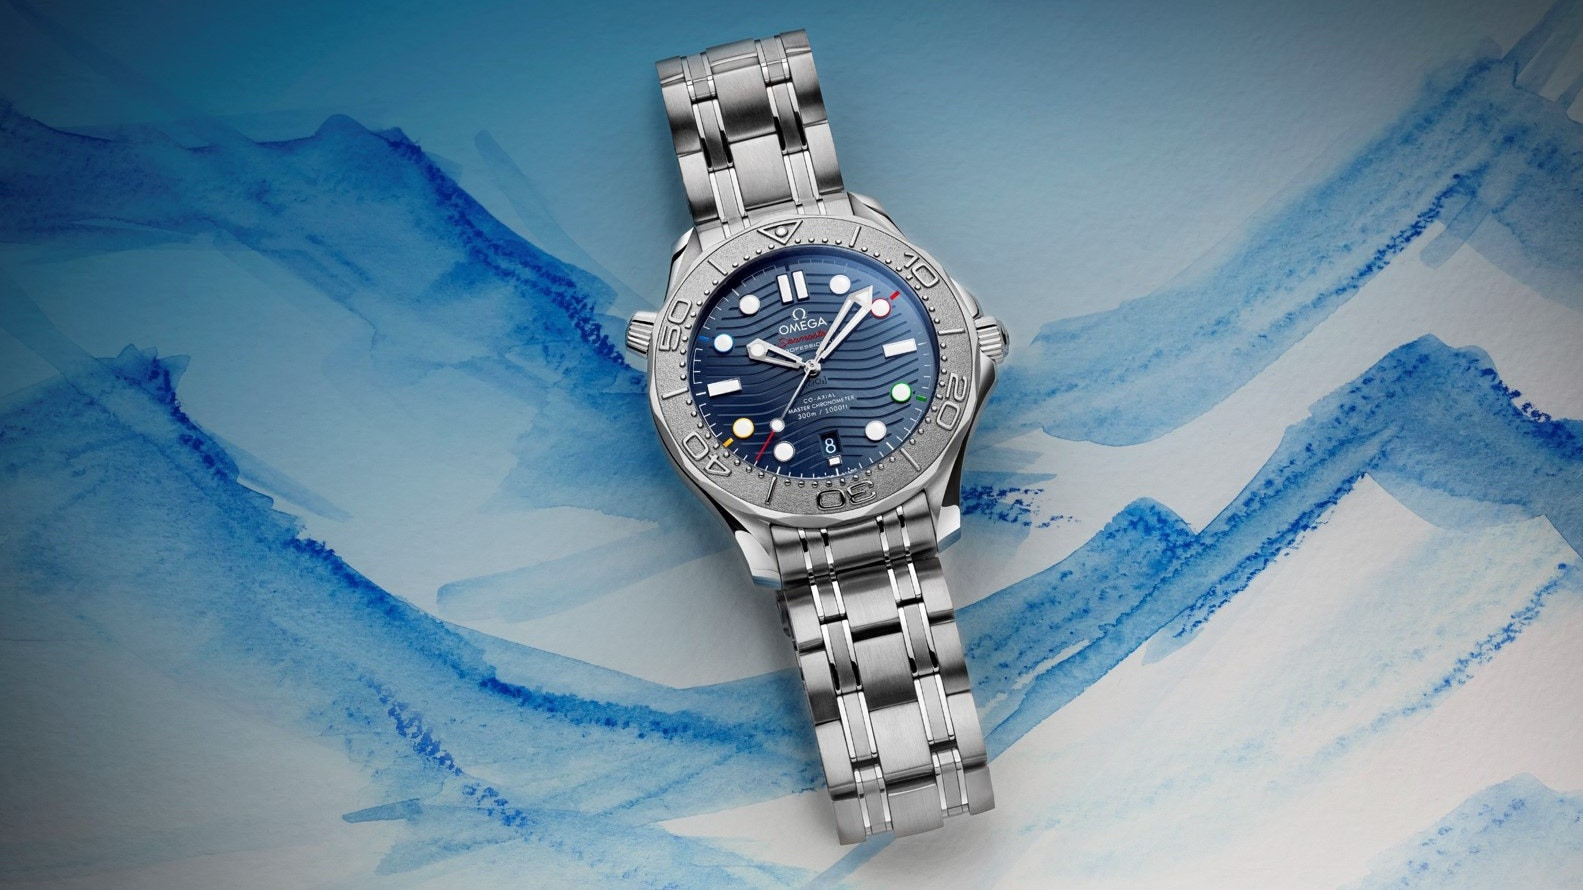 Omega launch special Seamaster Diver watch to mark Beijing 2022